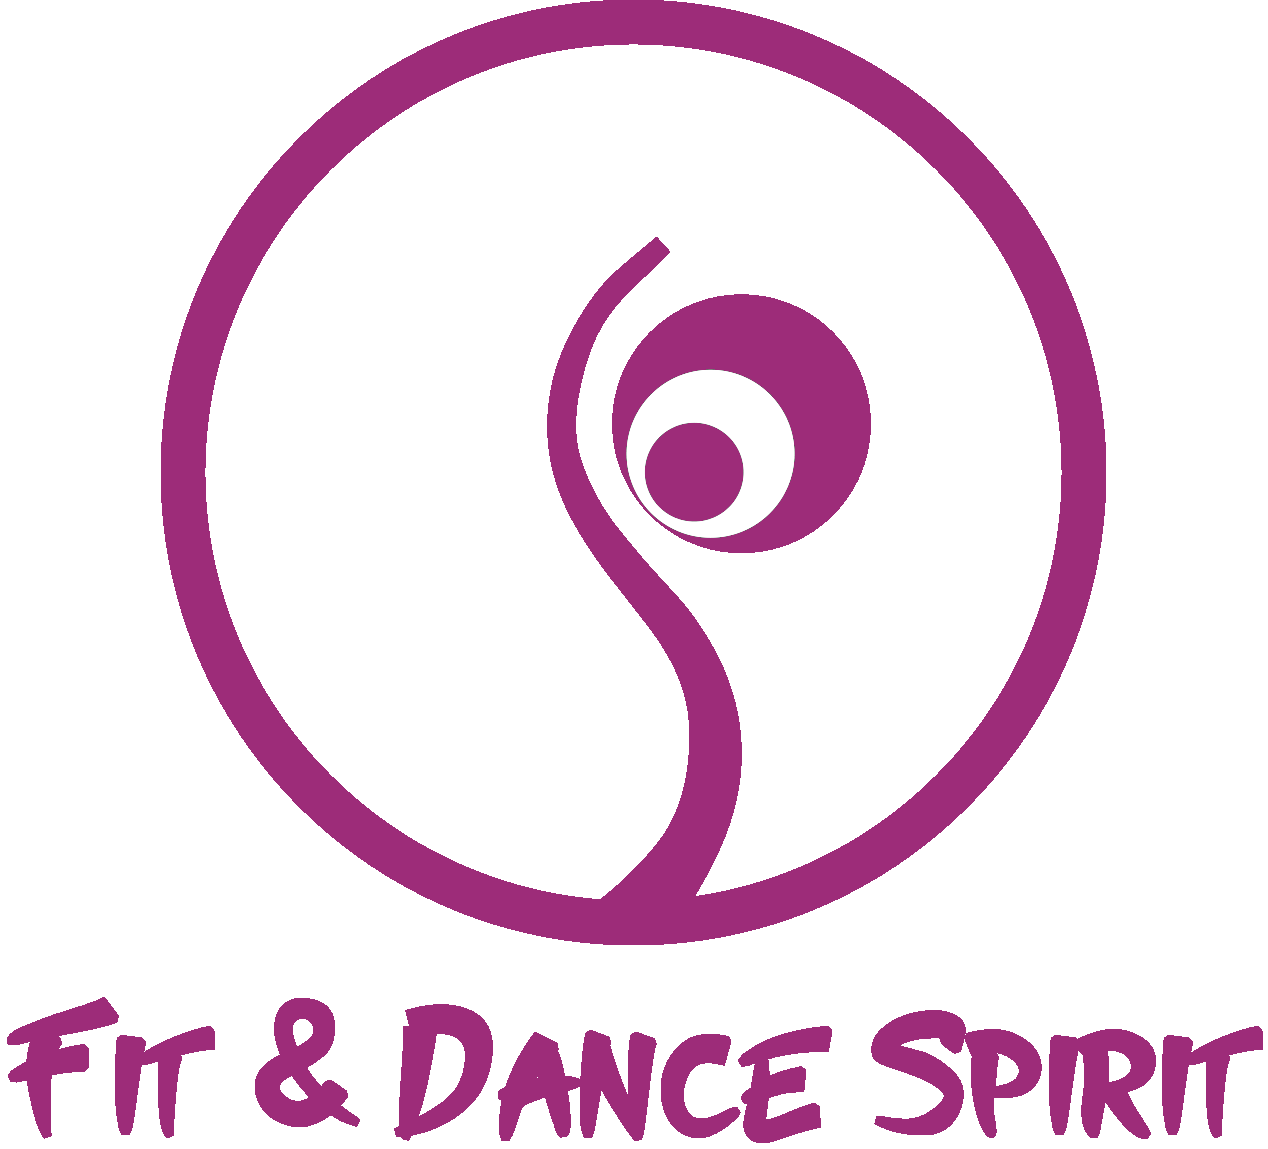 Fit & Dance Spirit